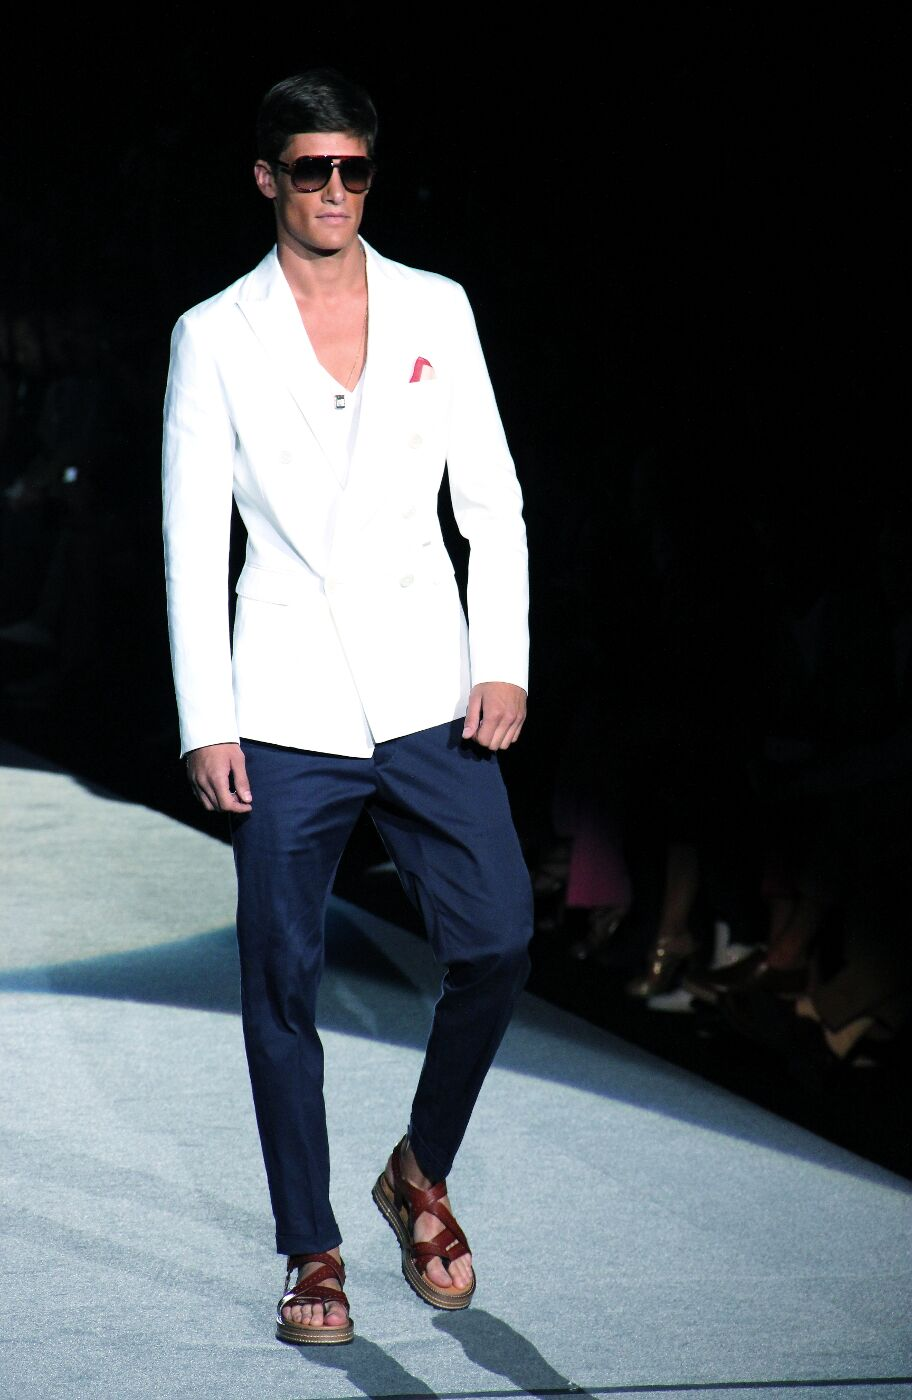 spring-summer-dsquared2-2012-men-collection-milano-fashion-week-2012-dsquared2-fashion-show-catwalk